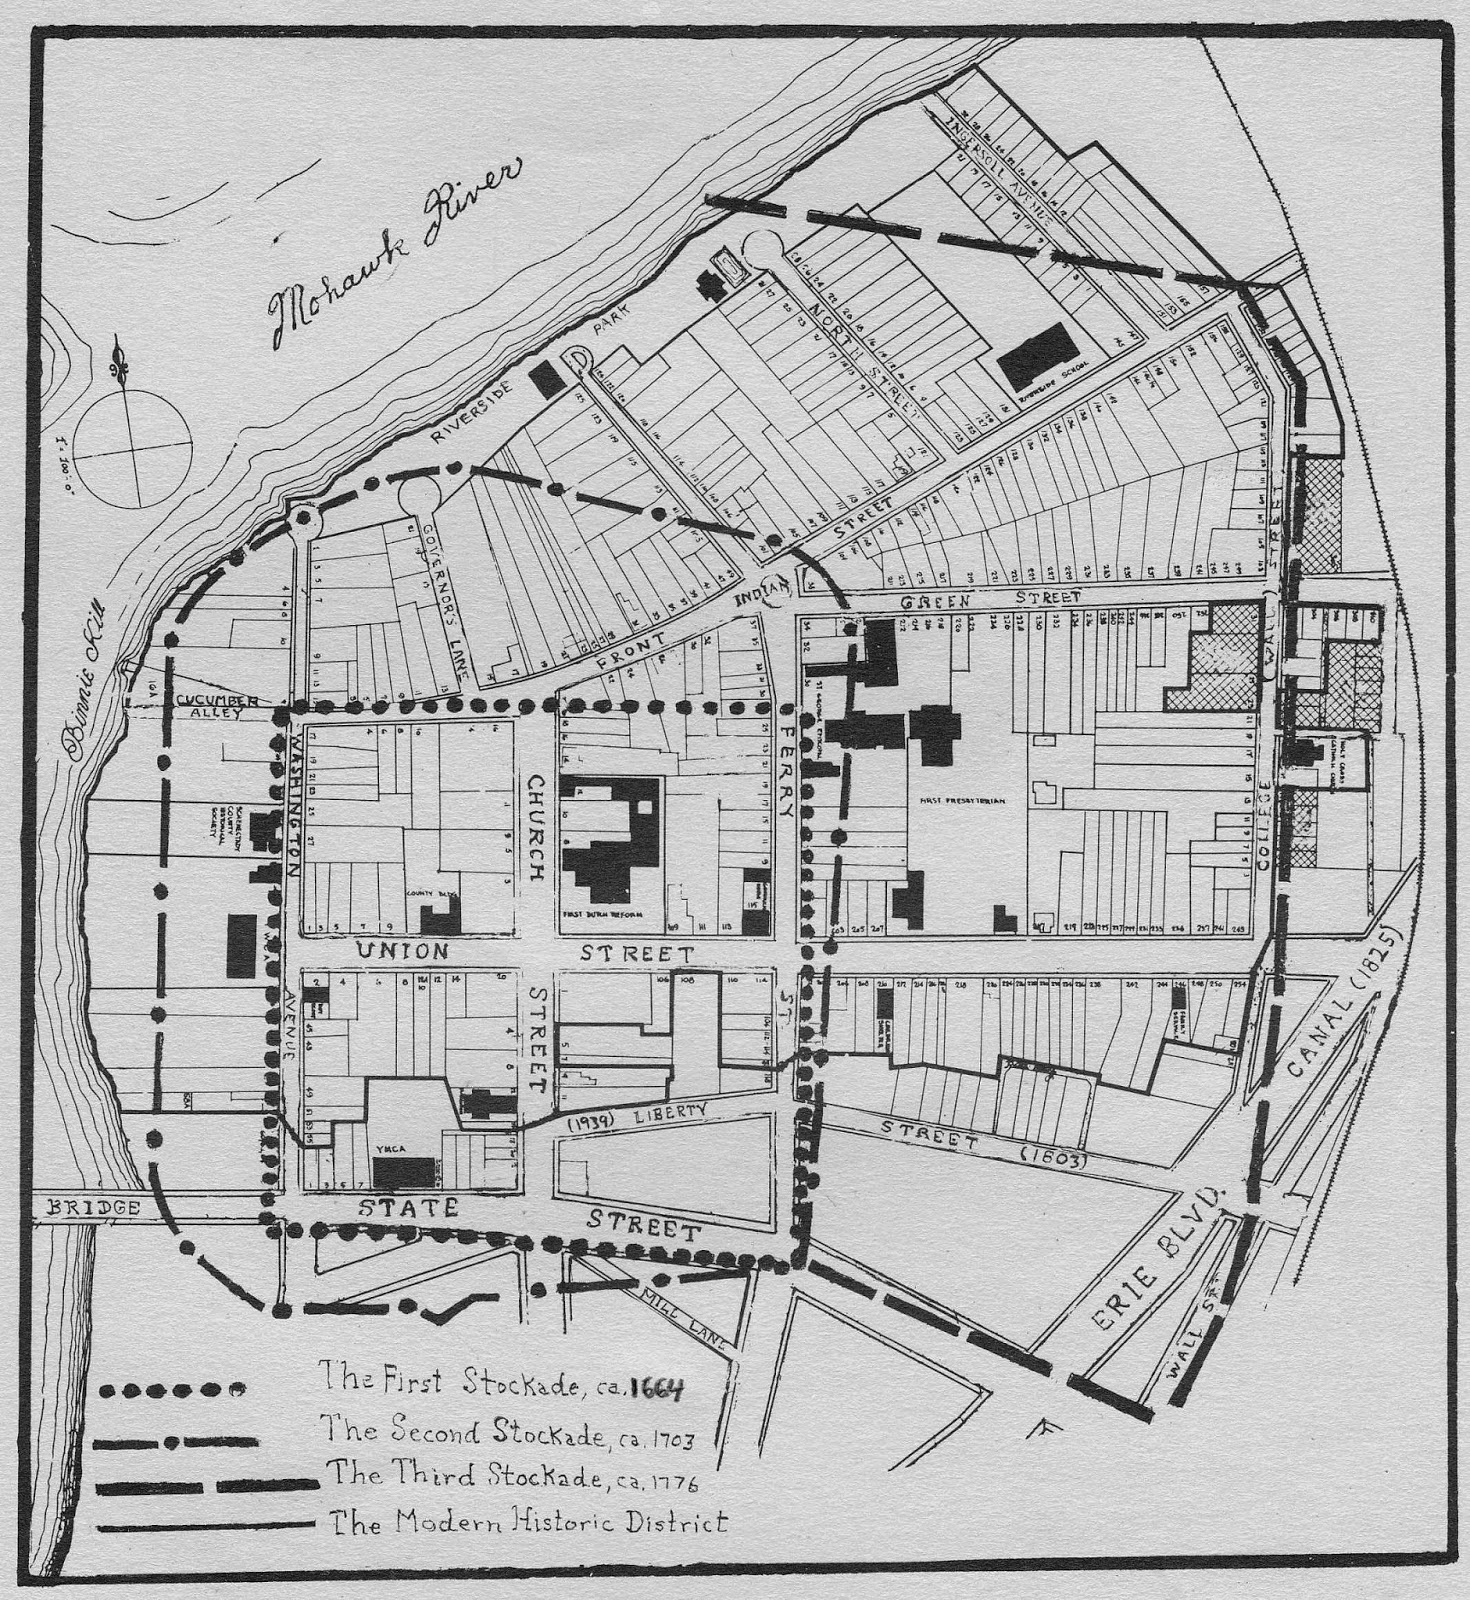 Grems doolittle library collections blog the rise and fall of stockades built around the settlement at schenectady overlaid on a modern map of the modern stockade historic district the location of wall street can ccuart Gallery